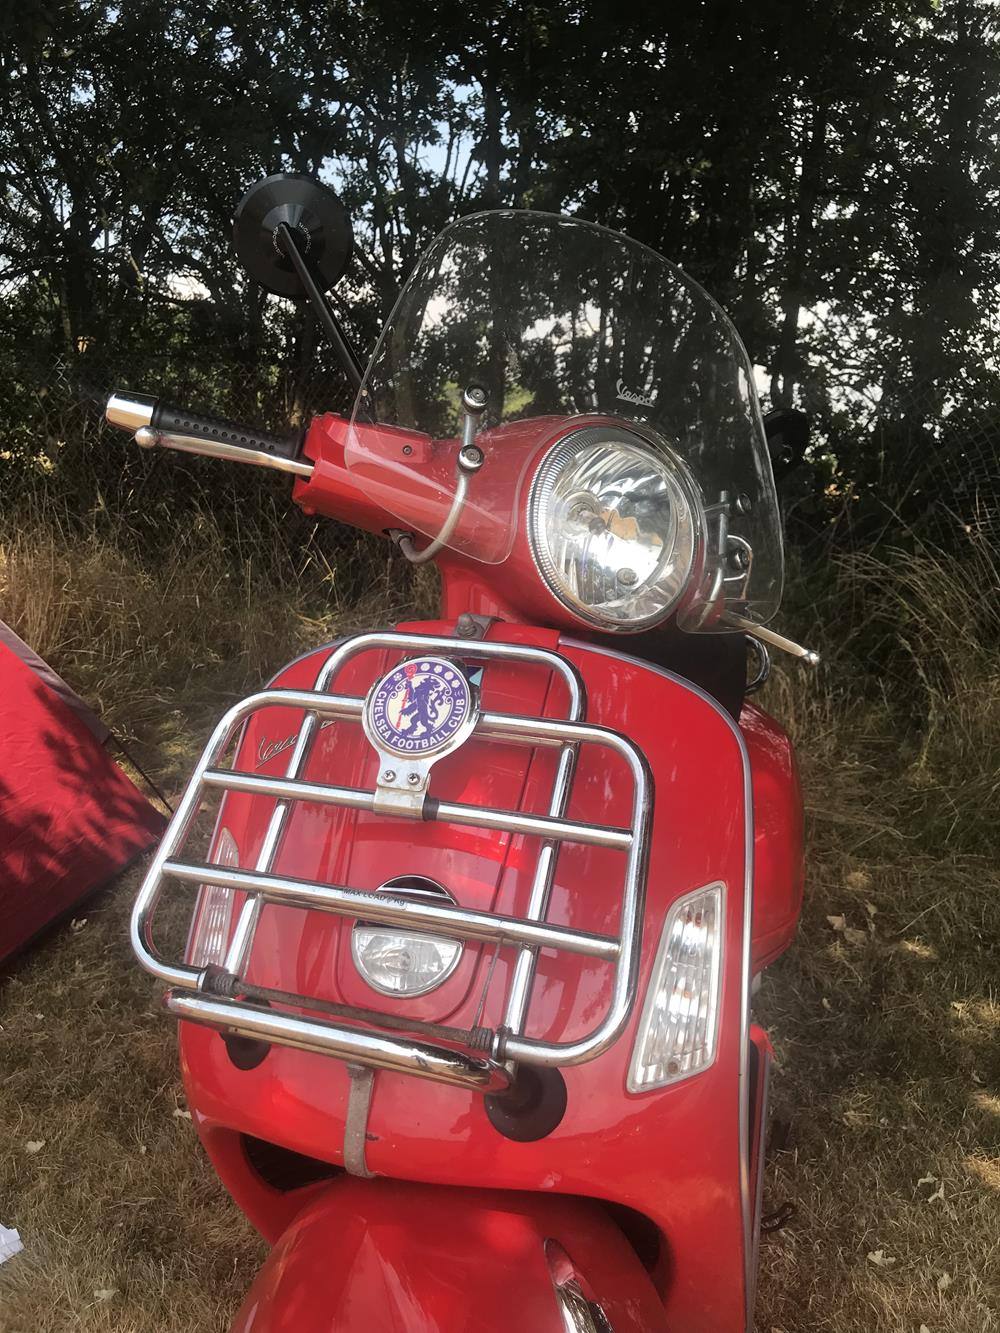 Red Vespa GTS with Chelsea fooball badge on the front rack